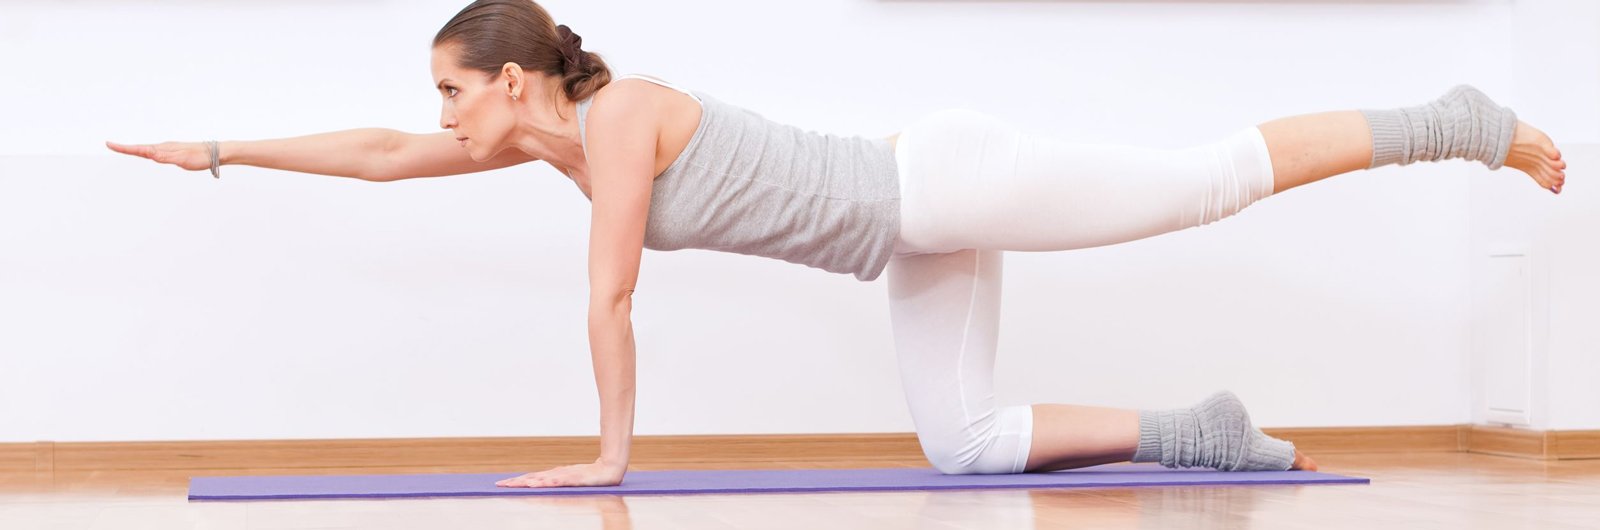 Pilates at King Henry Sports Centre Coventry